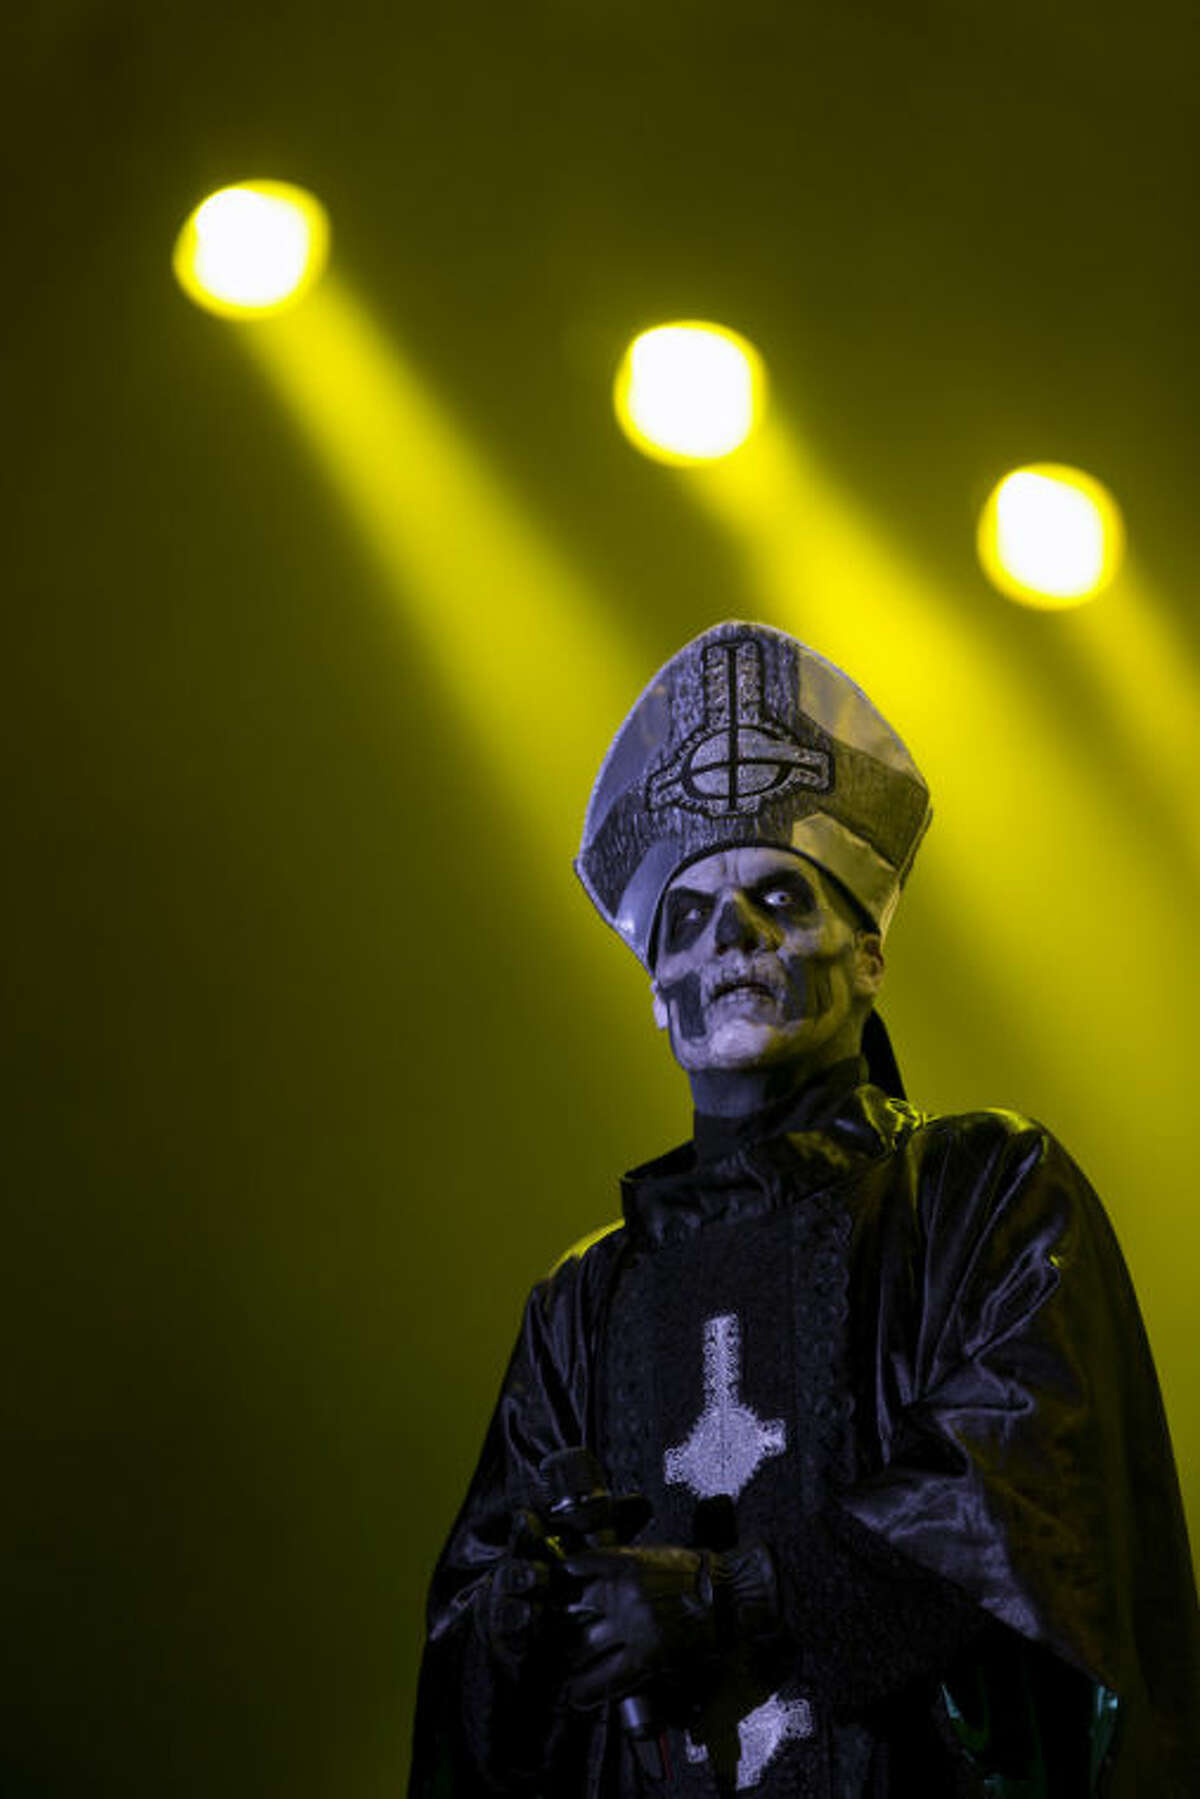 Mary Goore of the Swedish heavy metal band Ghost B.C., performs during the Rock in Rio music festival, in Rio de Janeiro, Thursday, Sept. 19, 2013. The week-long festival will feature a list of headliners including, Bon Jovi, Iron Maiden and Bruce Springsteen. (AP Photo/Silvia Izquierdo, File)